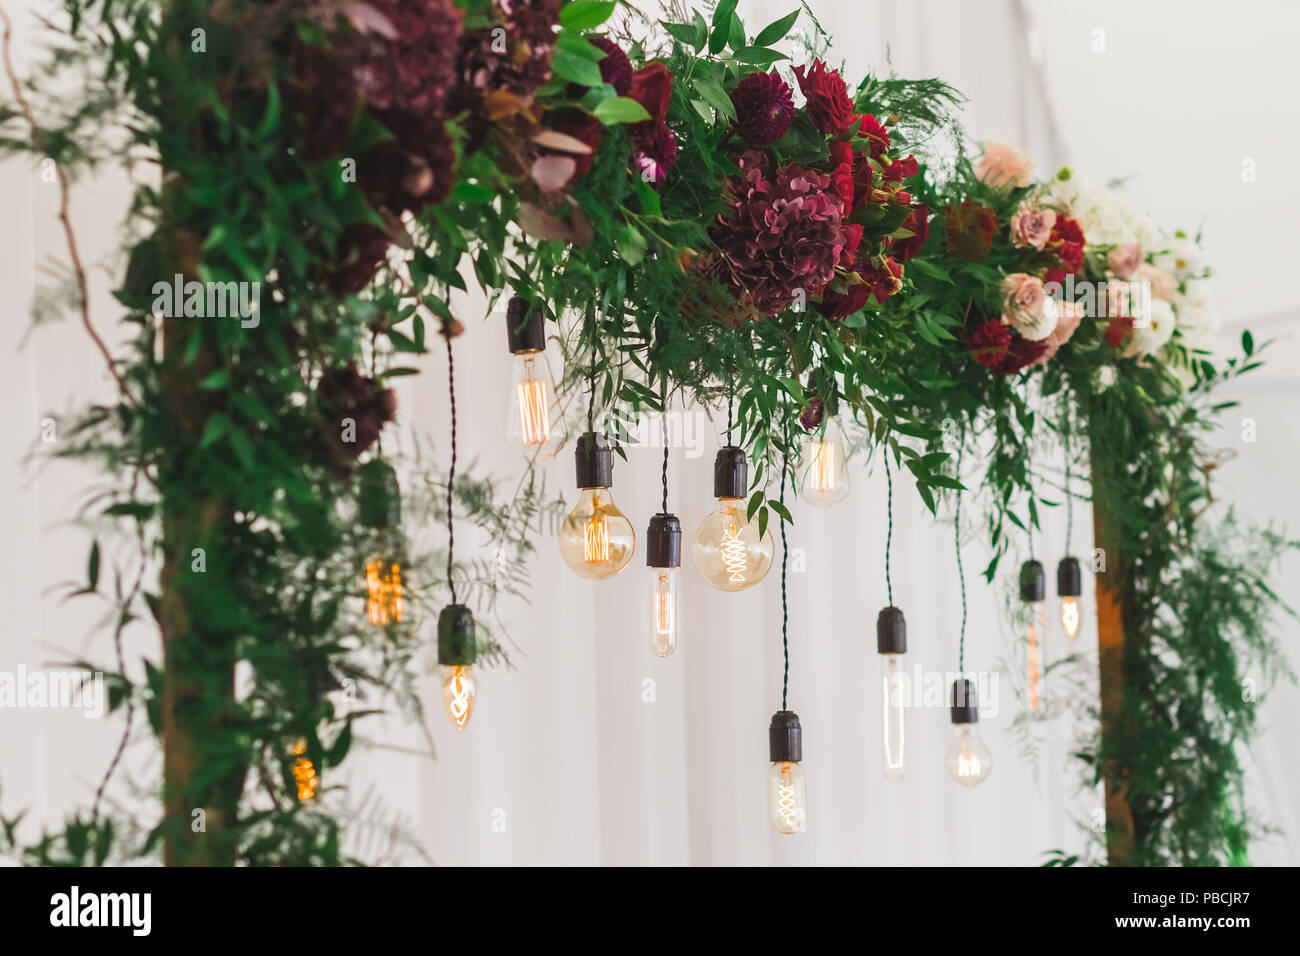 Wedding Reception Decoration With Different Electric Edison Lamps